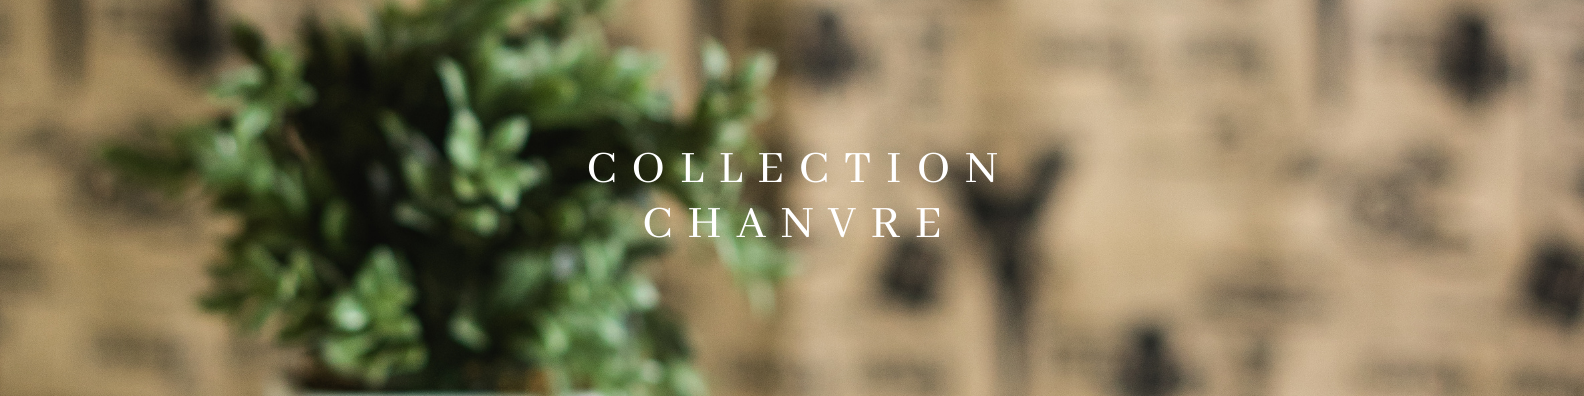 Collection_Chanvre.png